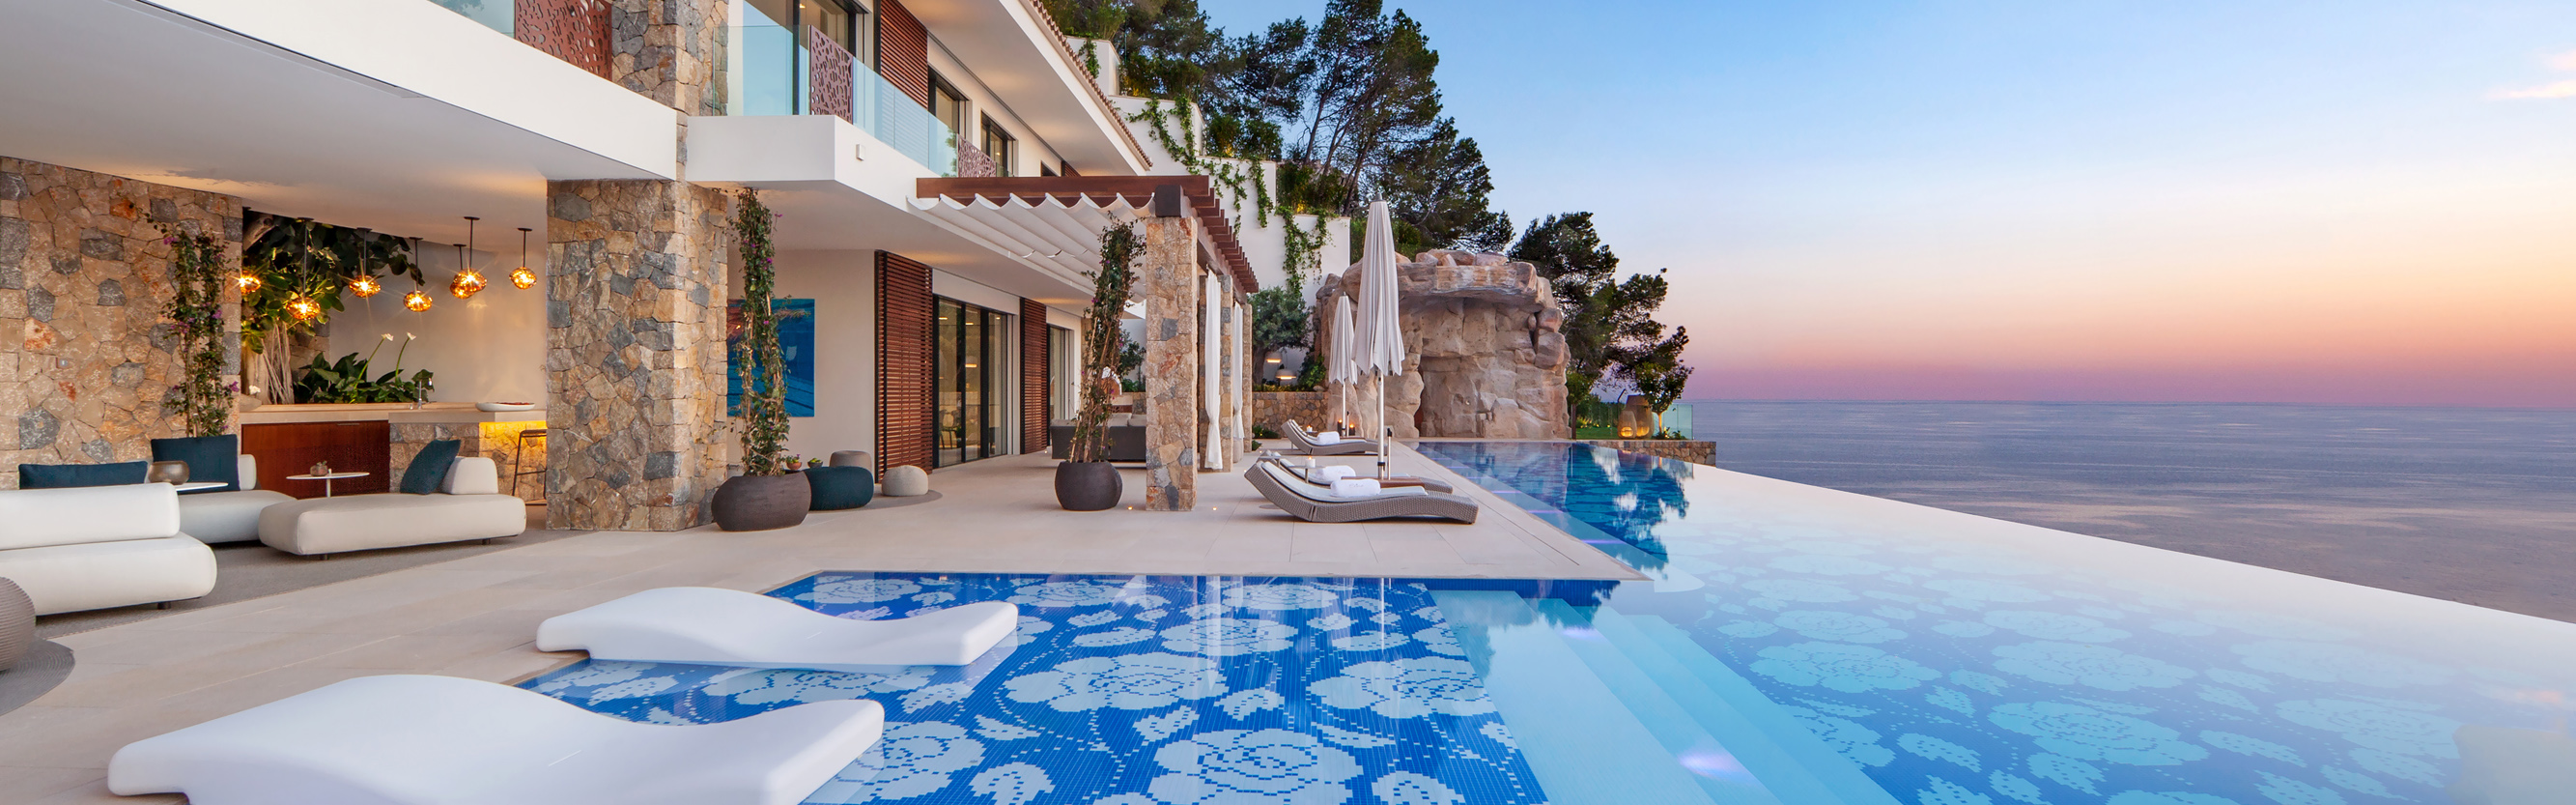 Balearen - Villa Cloud in Port Andratx, Mallorca